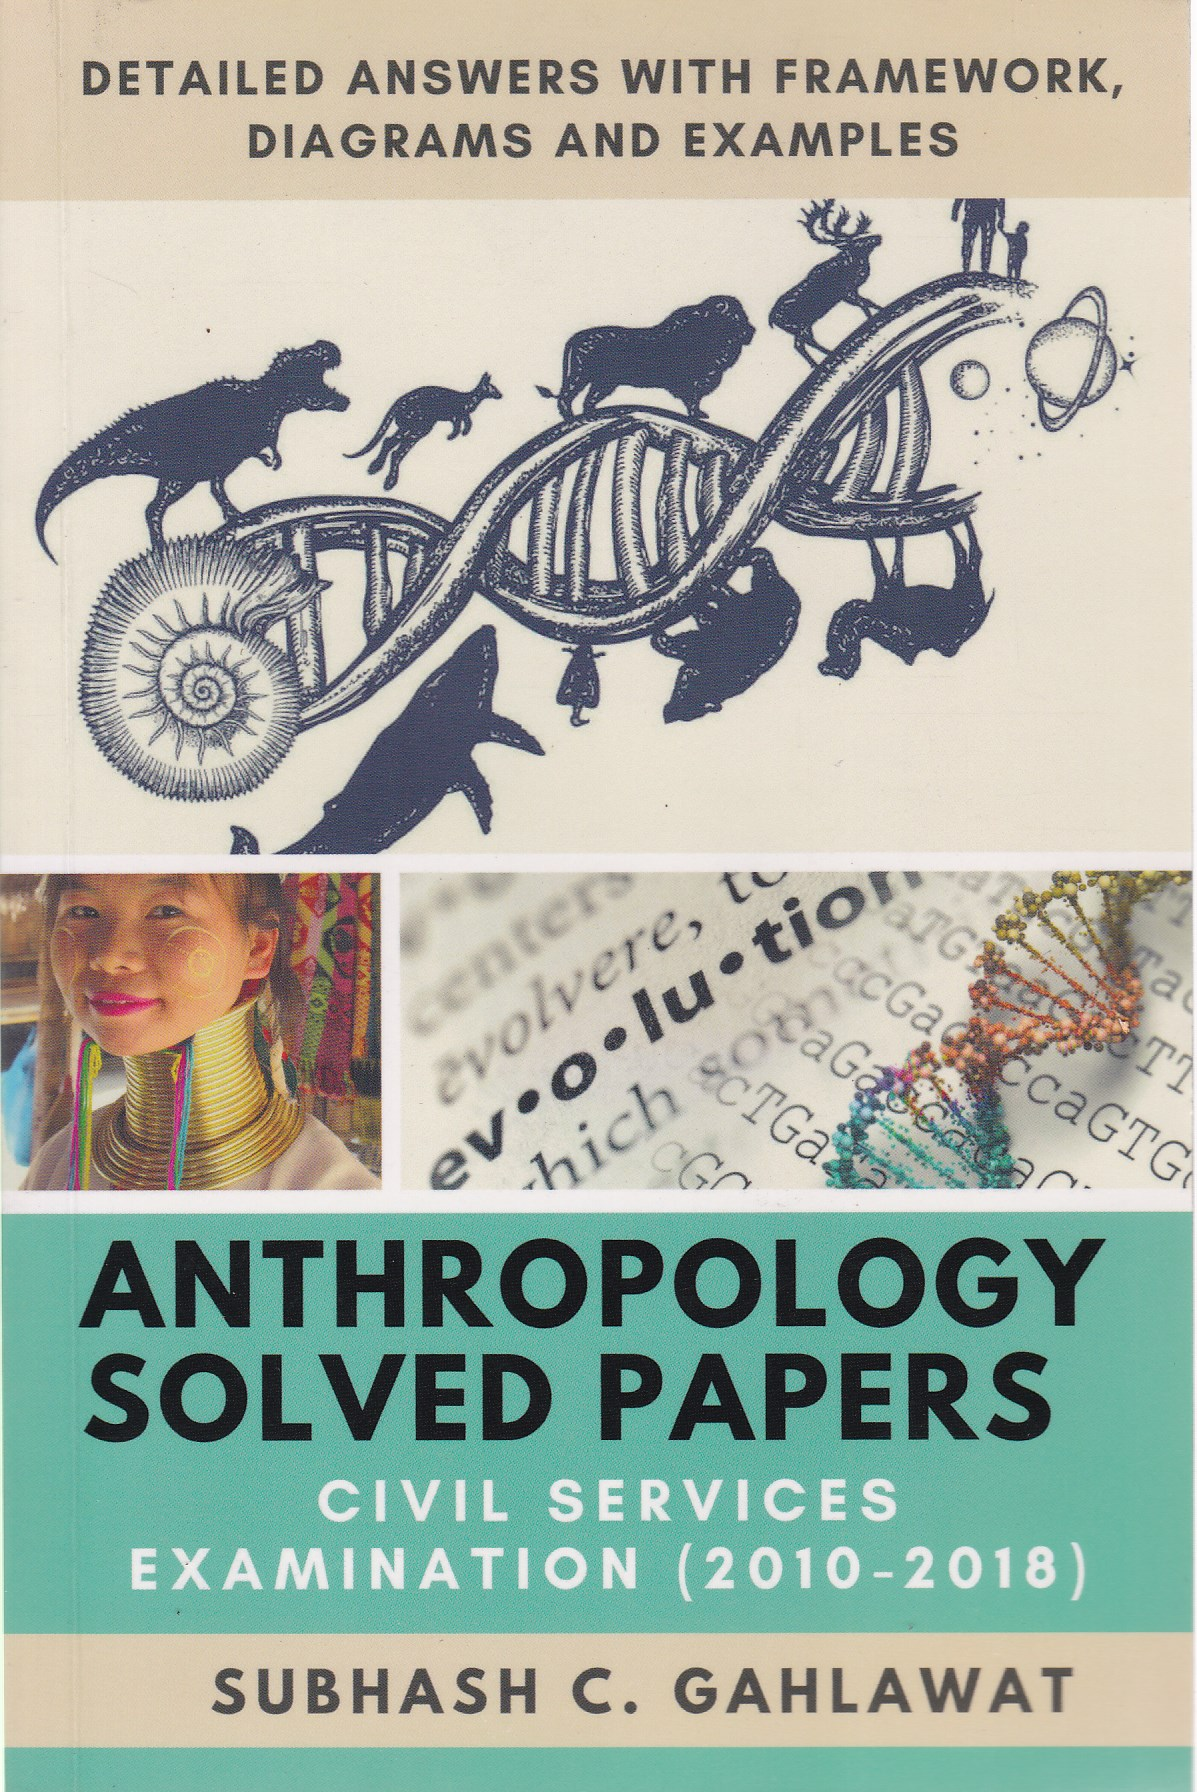 Journal of Anthropology  Anthropology Open Access Journals